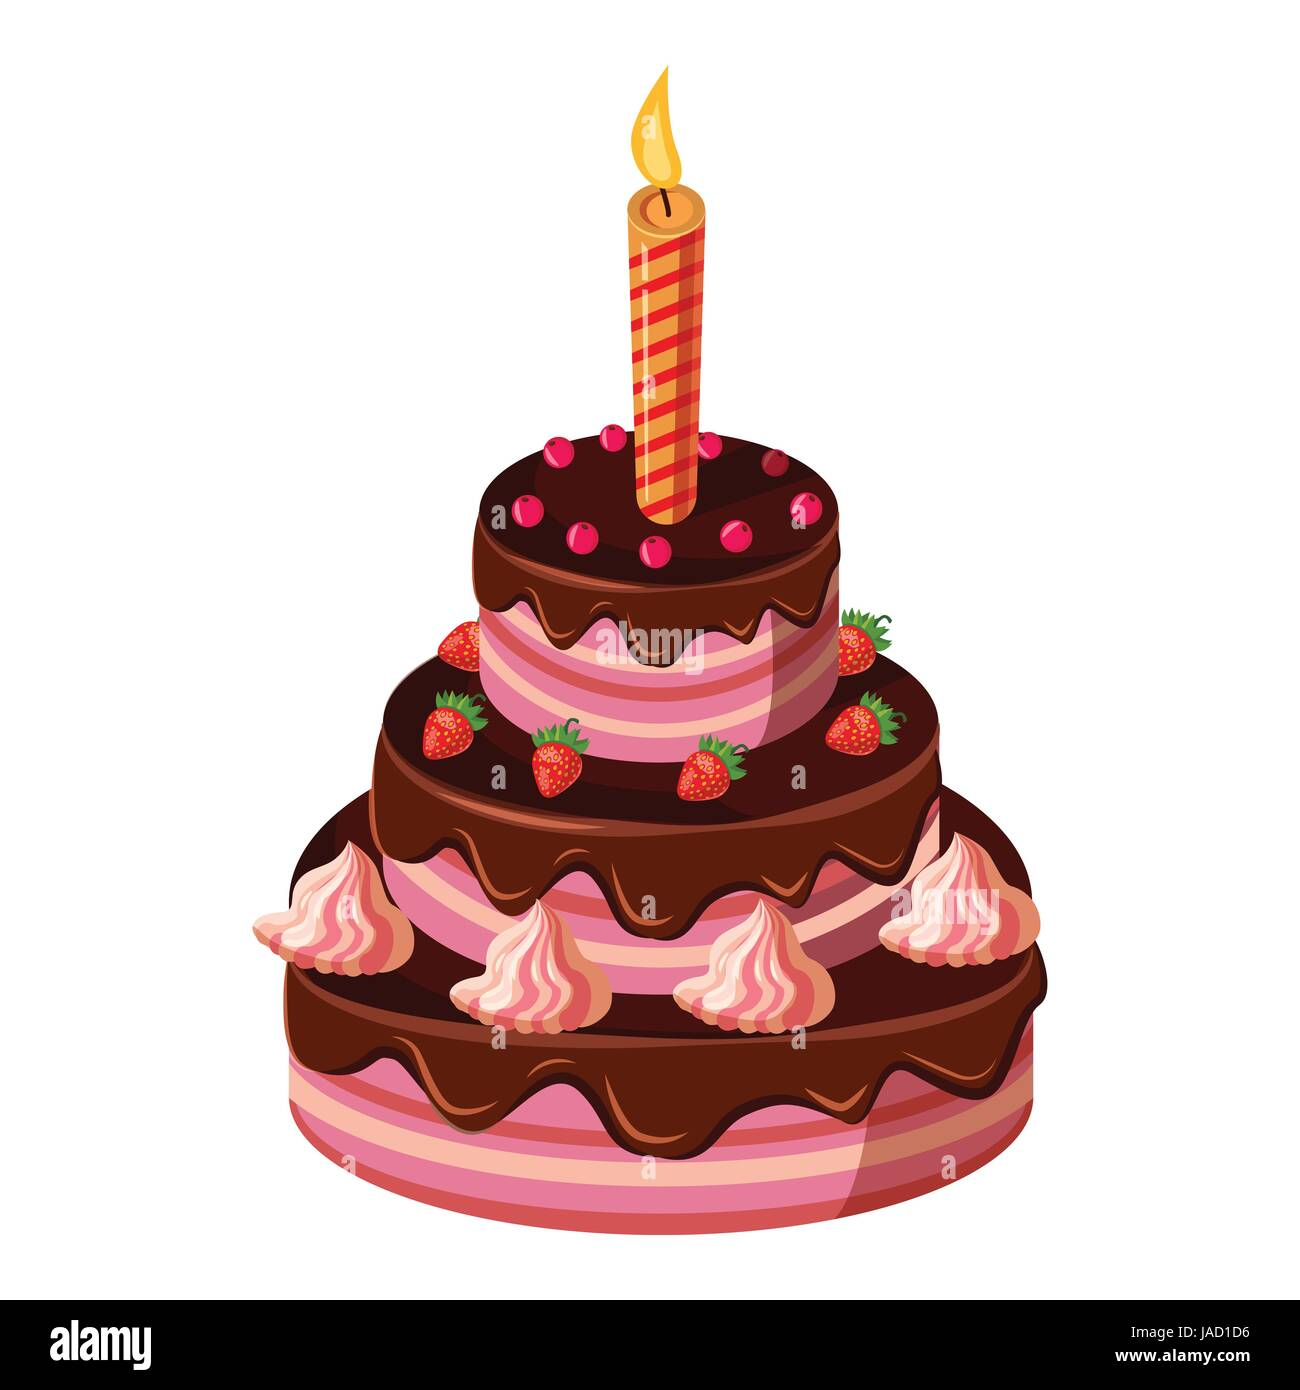 Birthday cake with candle icon Isometric 3d illustration of